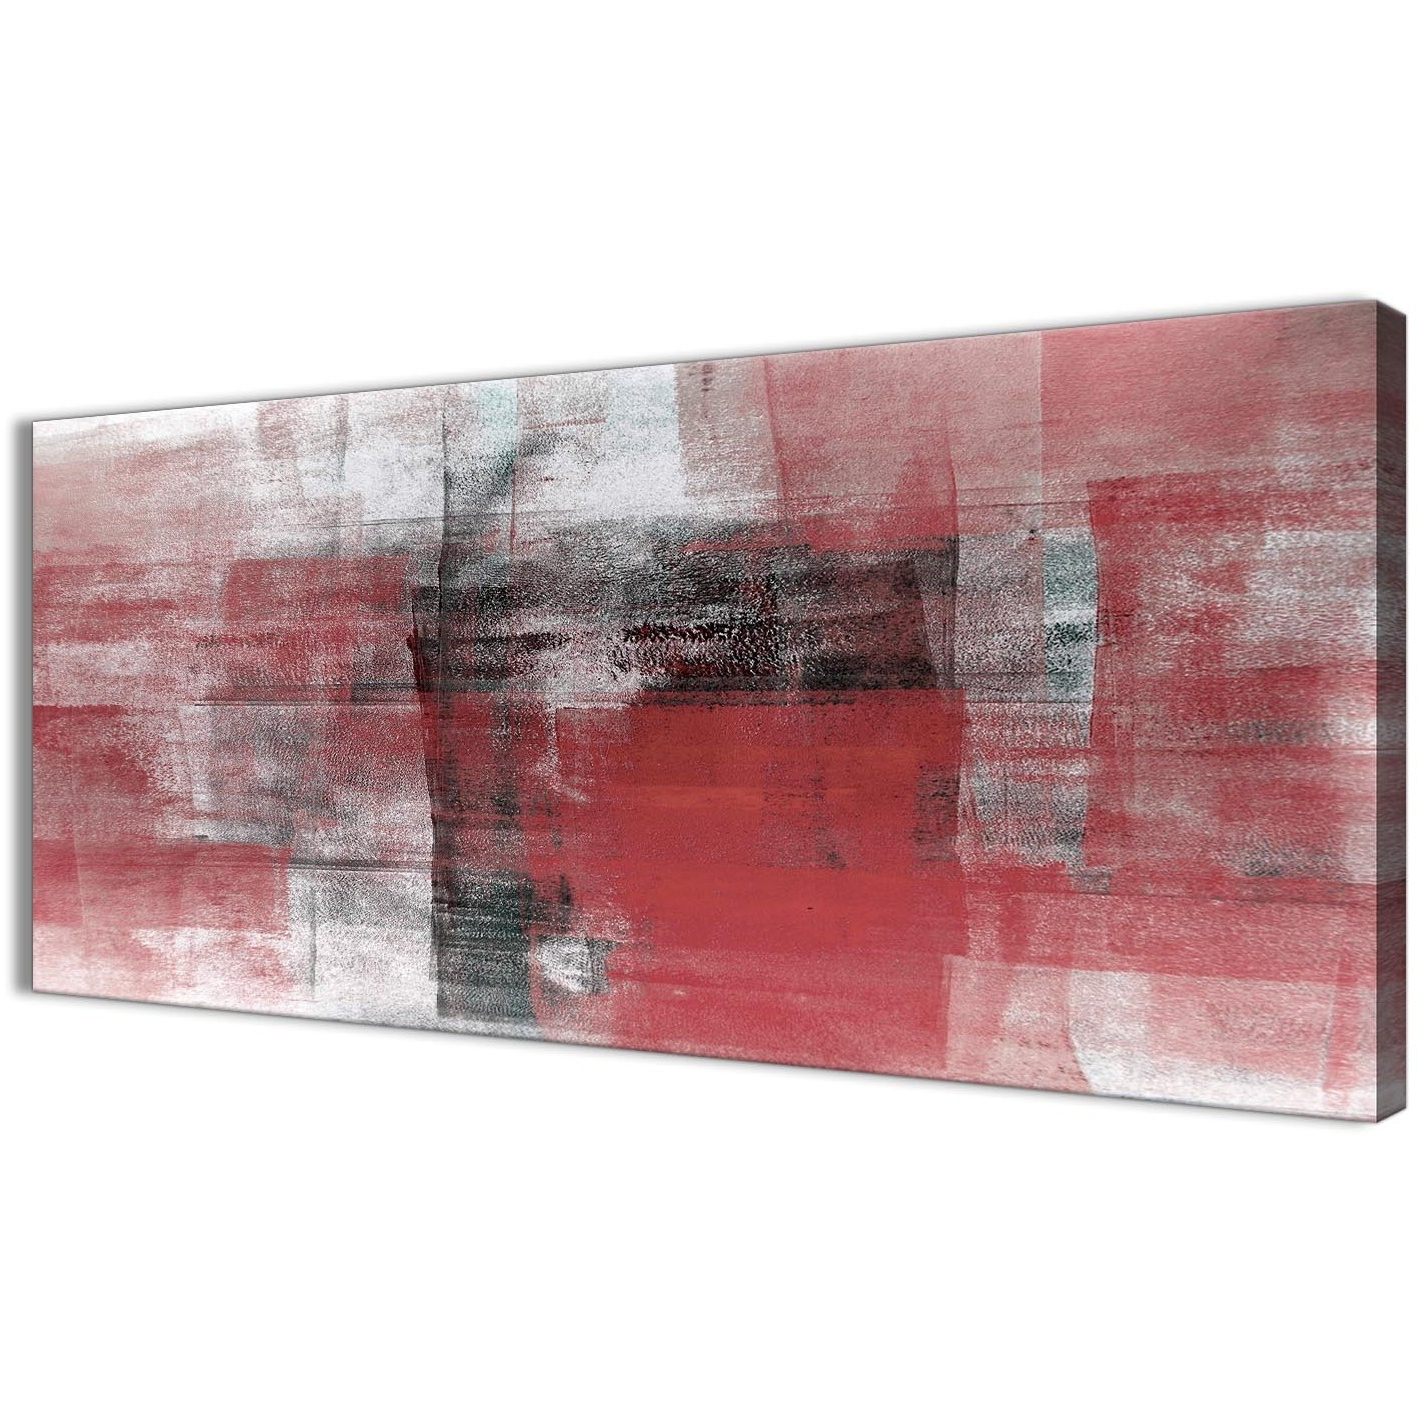 Most Up To Date Red Canvas Wall Art With Red Black White Painting Living Room Canvas Wall Art Accessories (View 7 of 15)